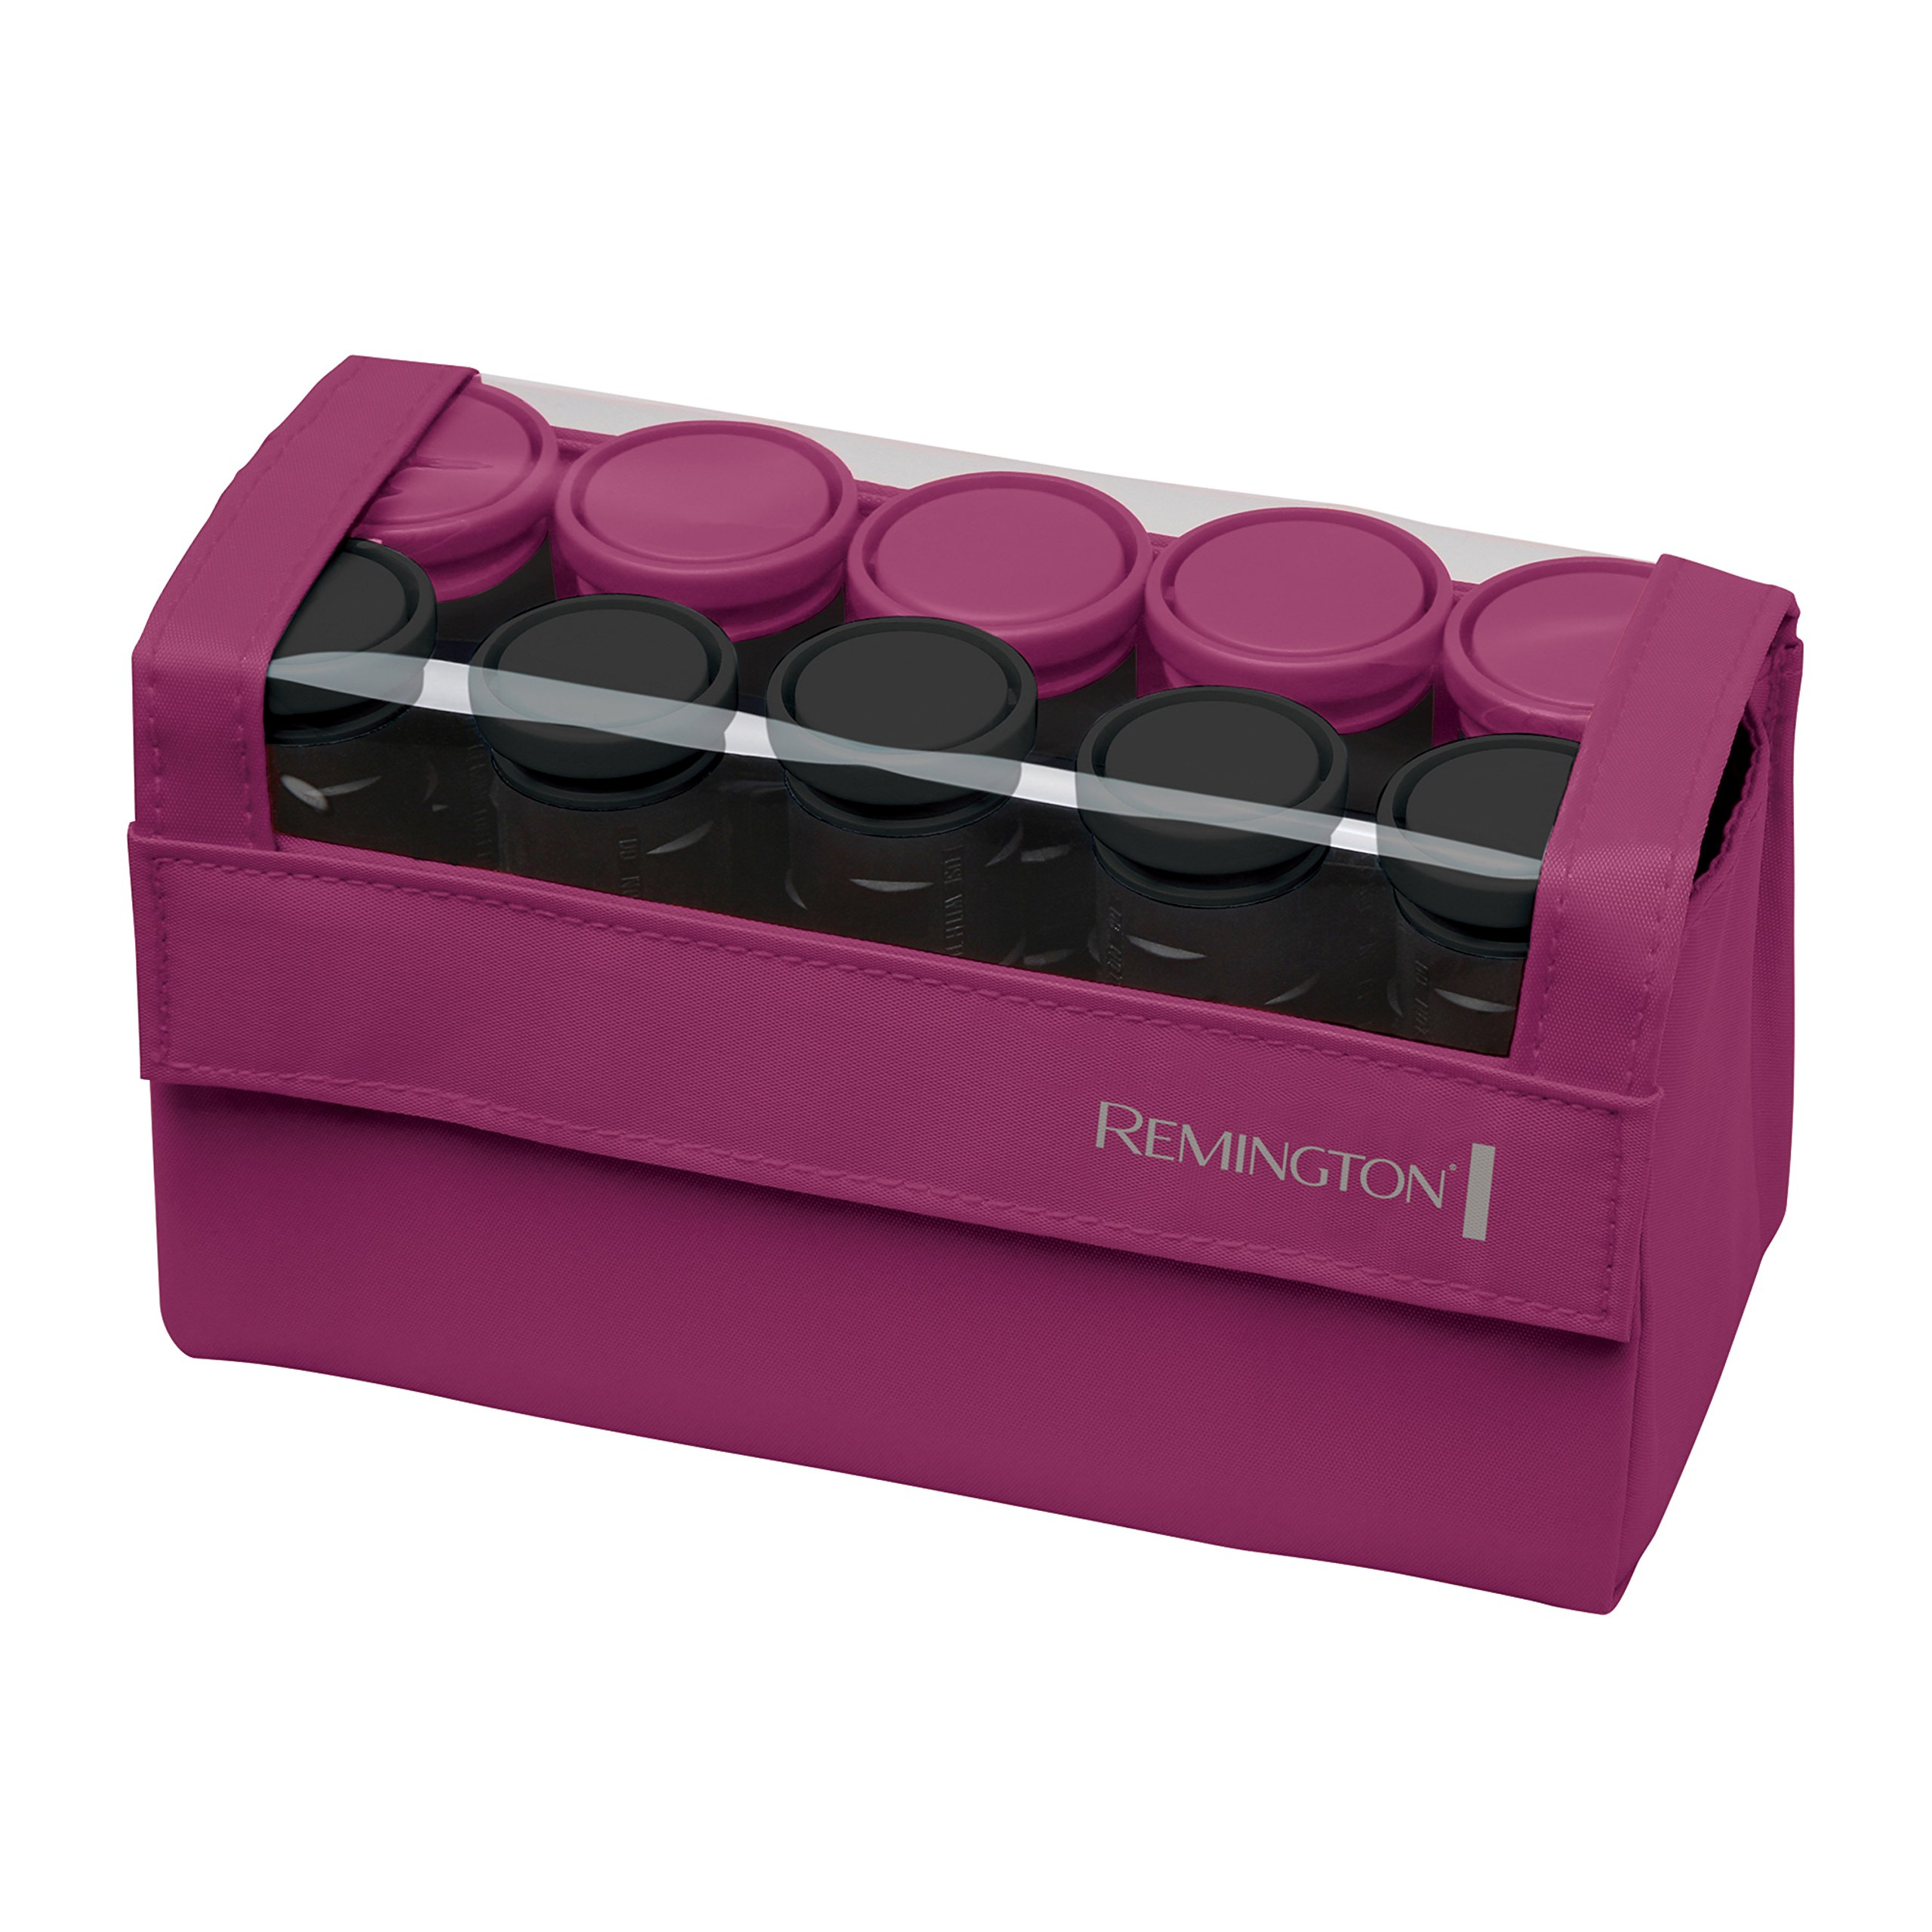 Remington H1015 Compact Ceramic Worldwide Voltage Hair Setter, Hair Rollers, 1-1 ¼ Inch, Pink by Remington